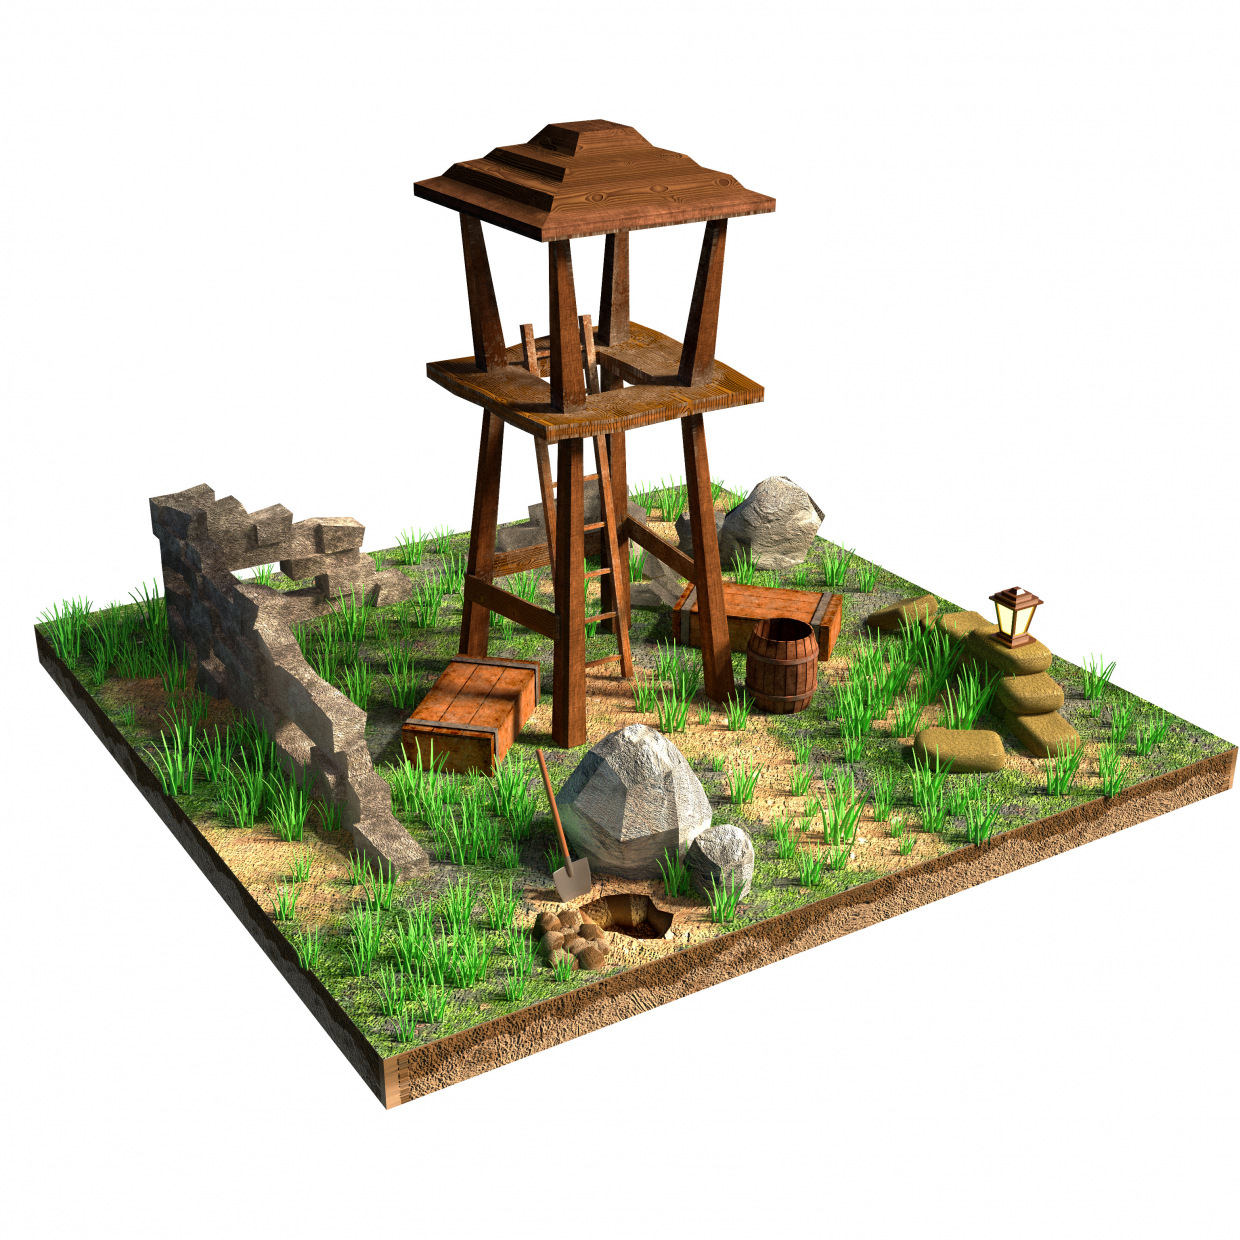 Wooden Tower in Maya Other image